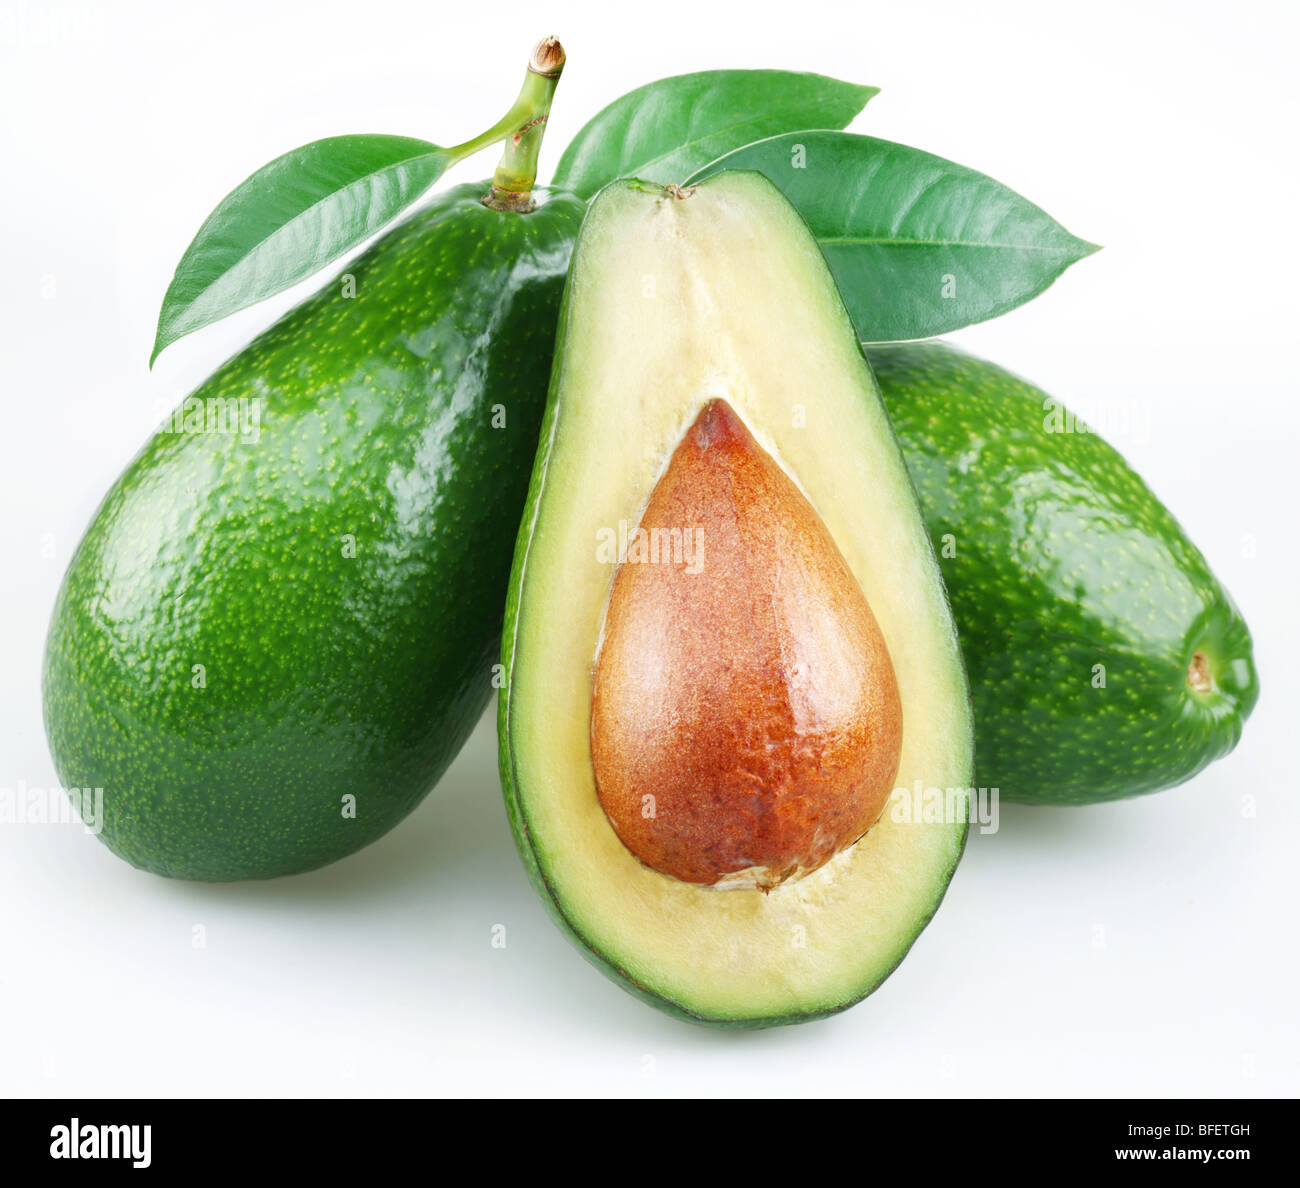 Avocado with leaves on a white background - Stock Image